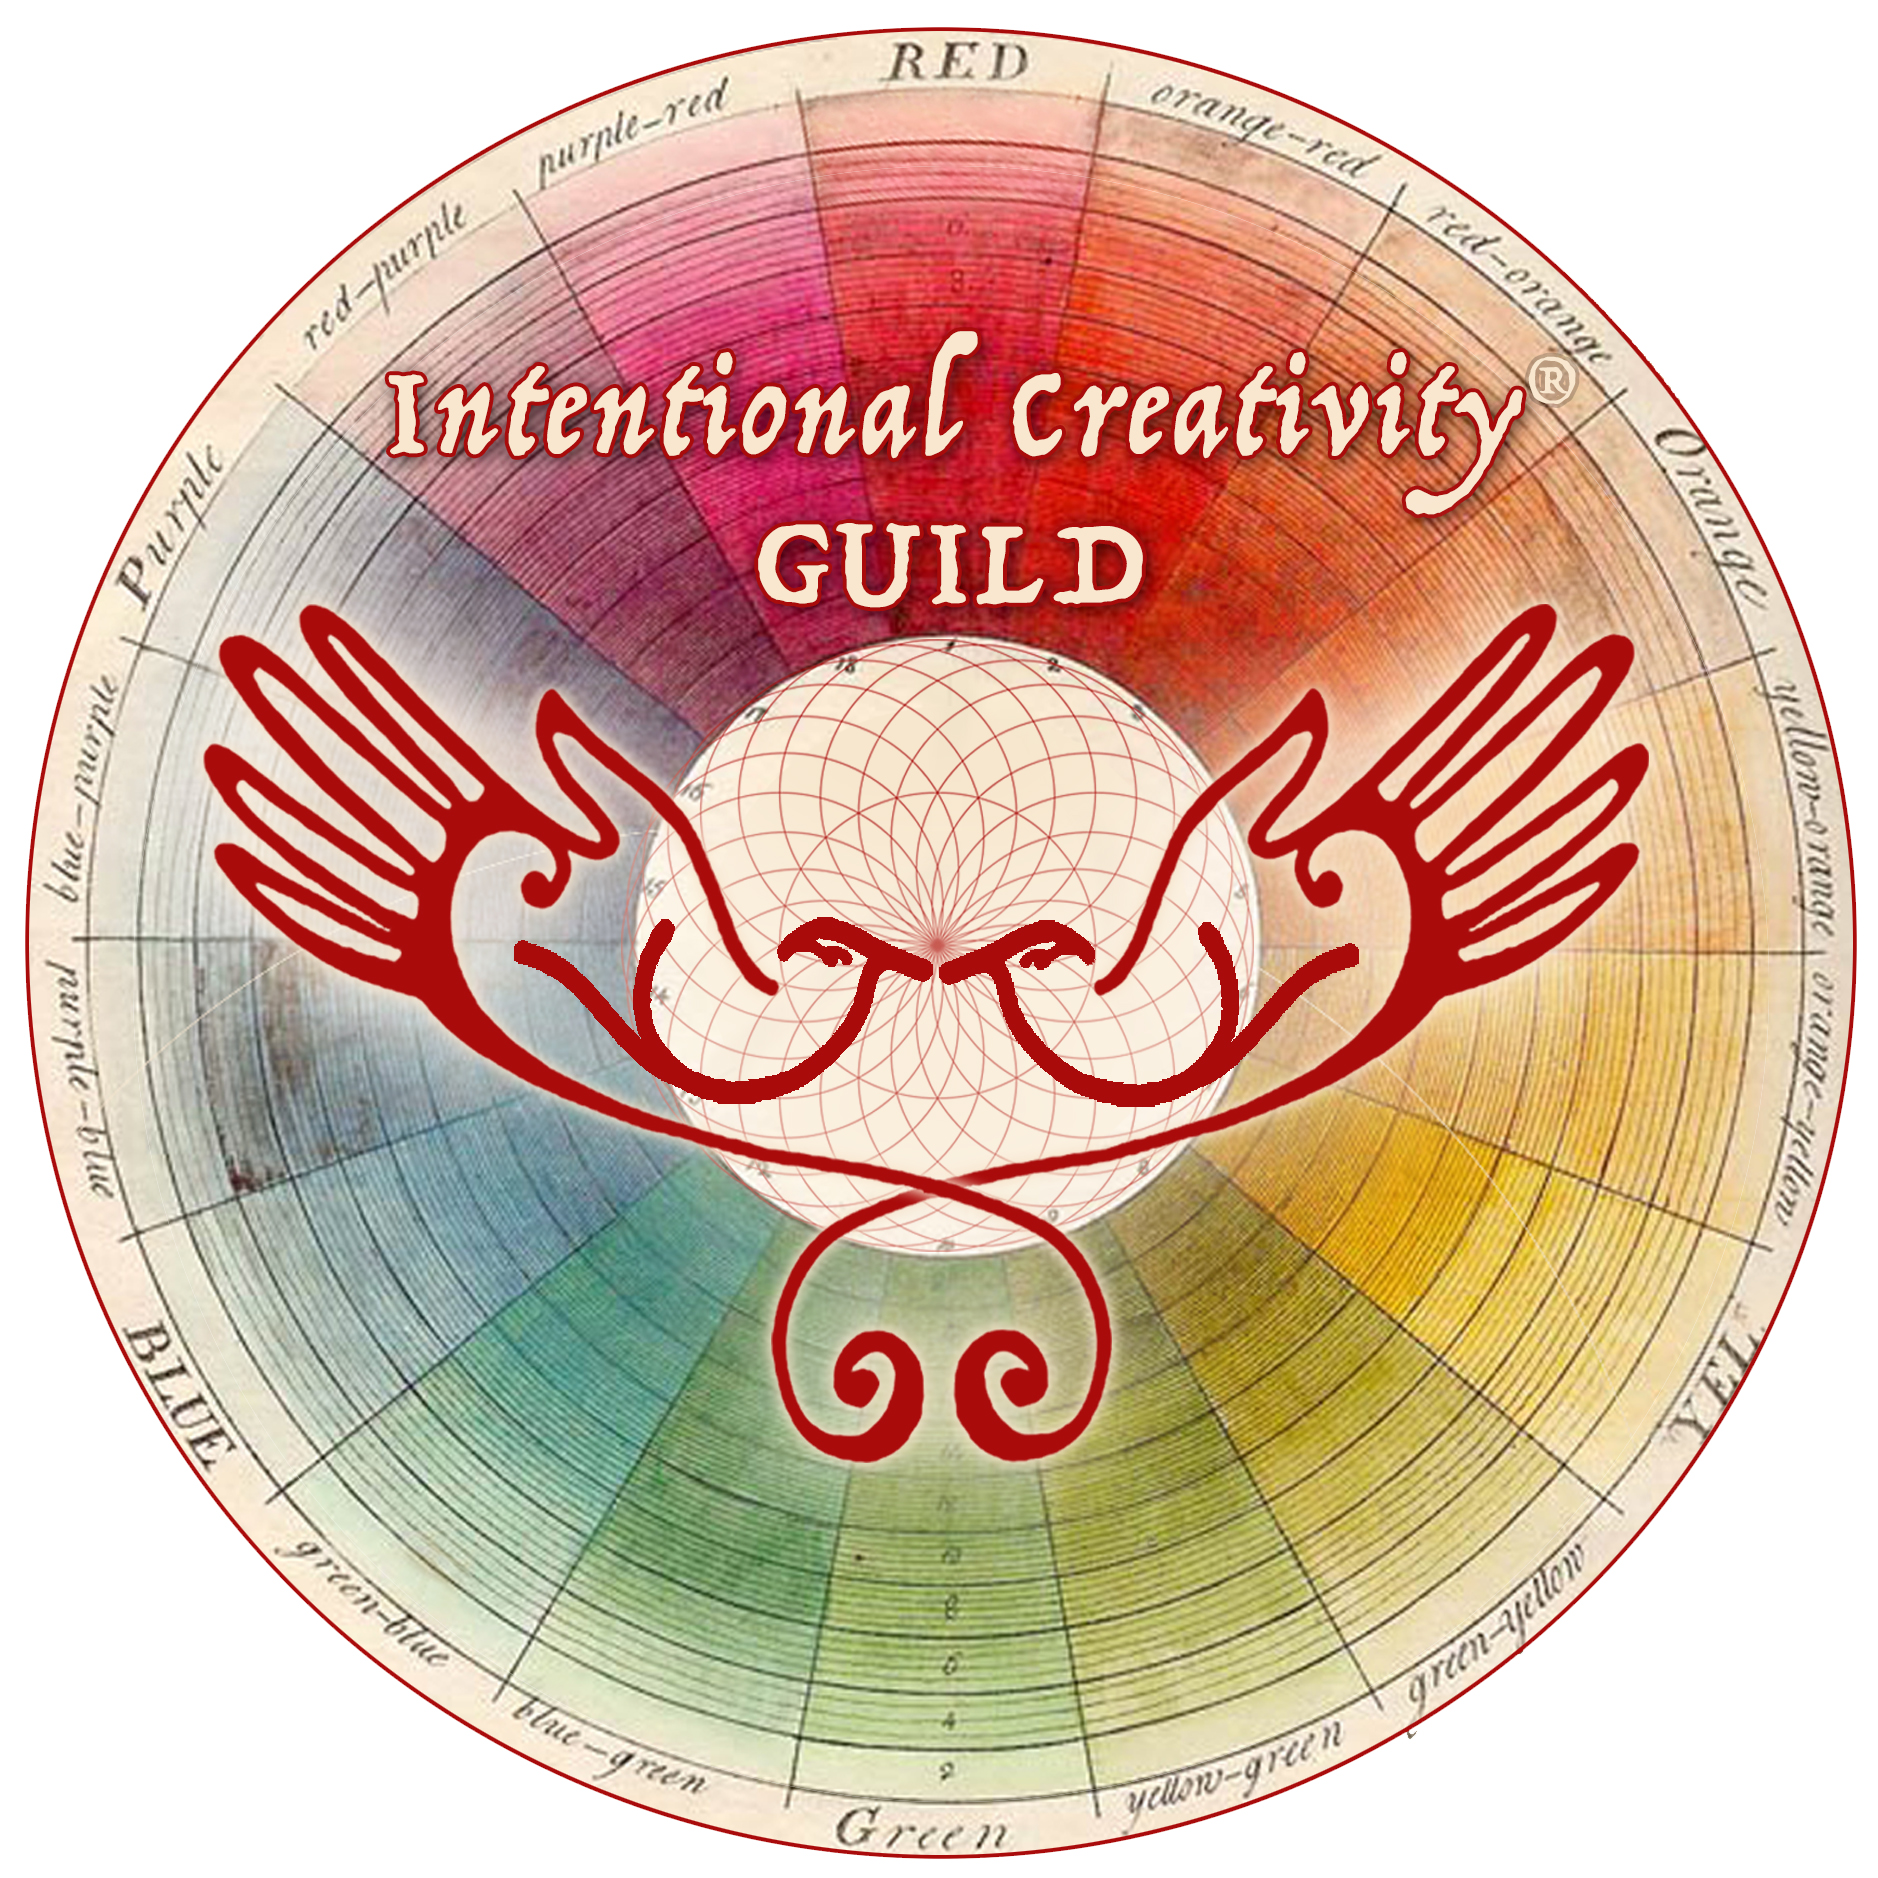 Our work + Our Teachers www.intentionalcreativityguild.org